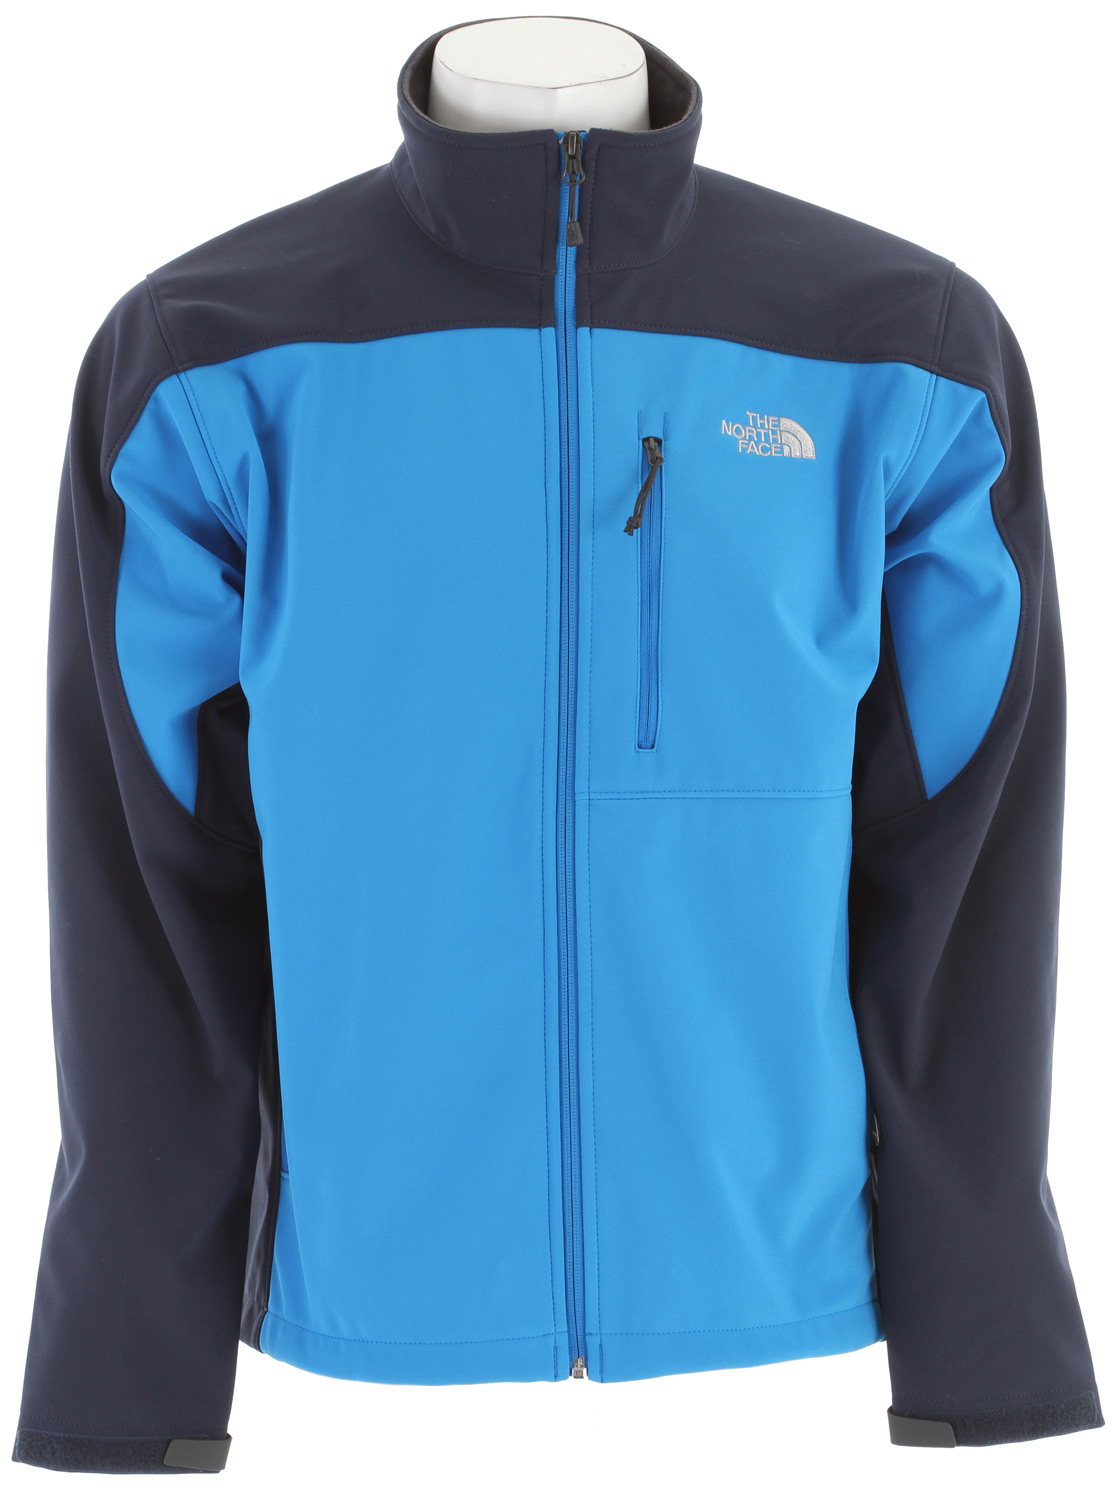 The North Face most versatile and widely worn soft shell has enhanced windproof features and a stretchy, comfortable fit; ideal for multiple activities.Key Features of The North Face Apex Bionic Jacket: Standard fit TNF Apex ClimateBlock fabric wind permeability rated at 0 CFM Fleece backer Napoleon chest pocket Two hand pockets Velcro adjustable cuffs with molded cuff tabs Hem cinch-cord adjustment in pockets - $103.95